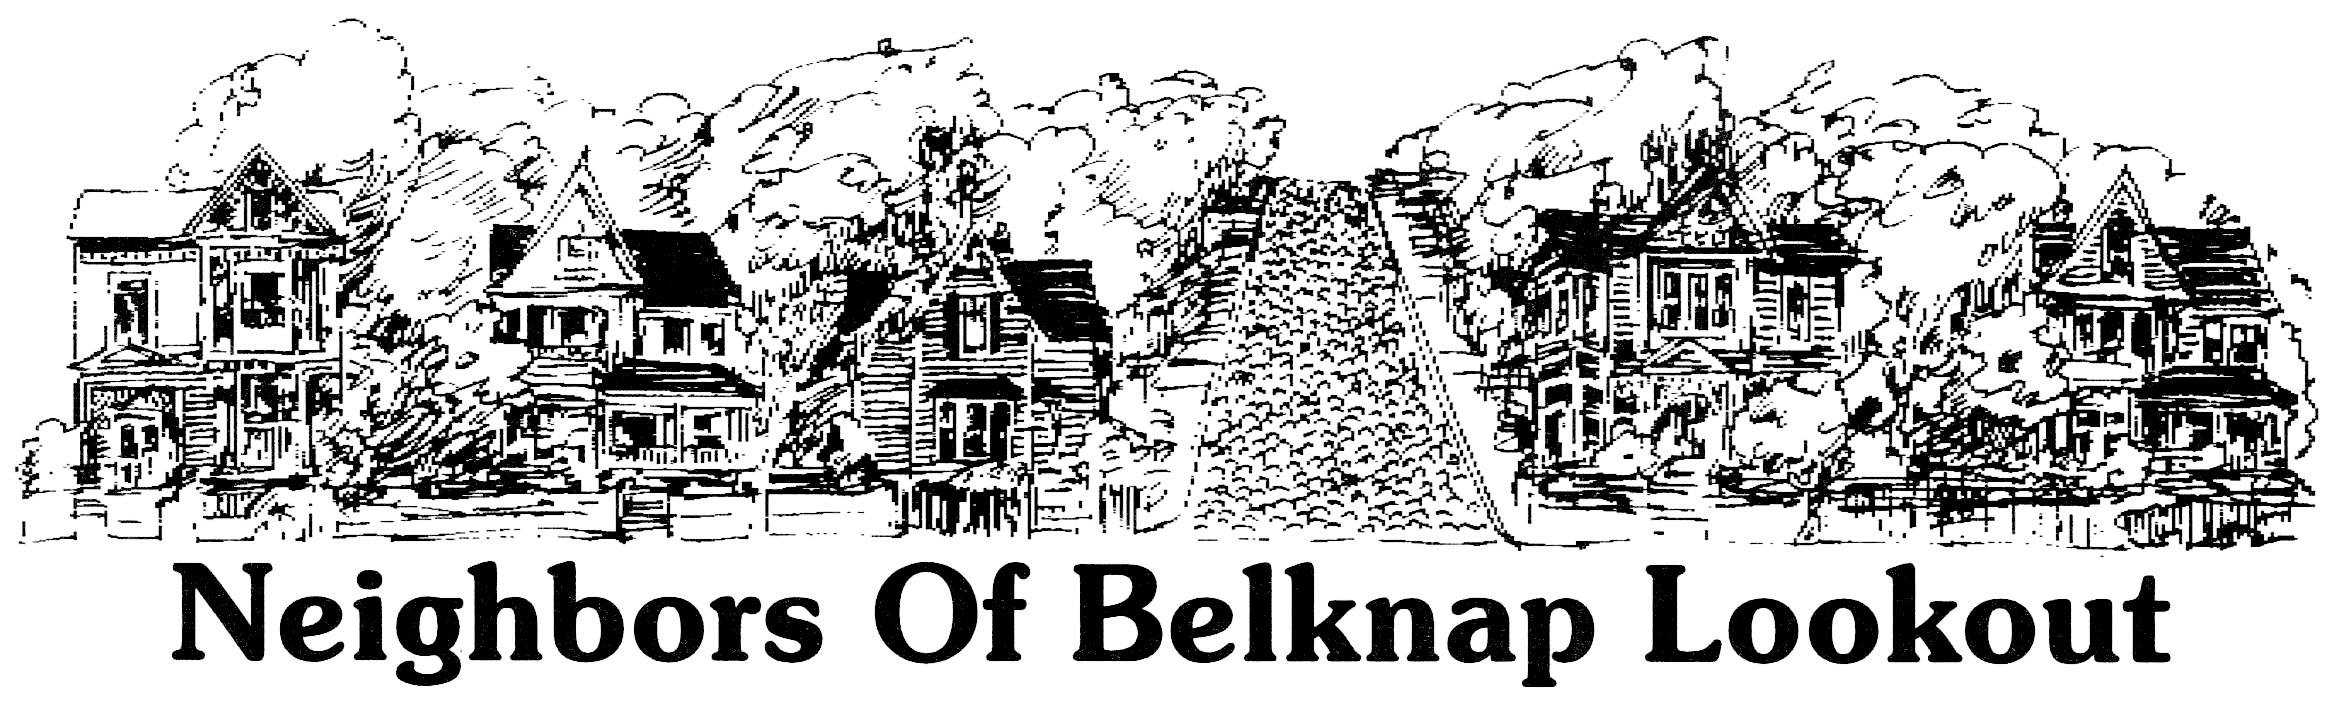 Neighbors of Belknap Lookout - logo and home link